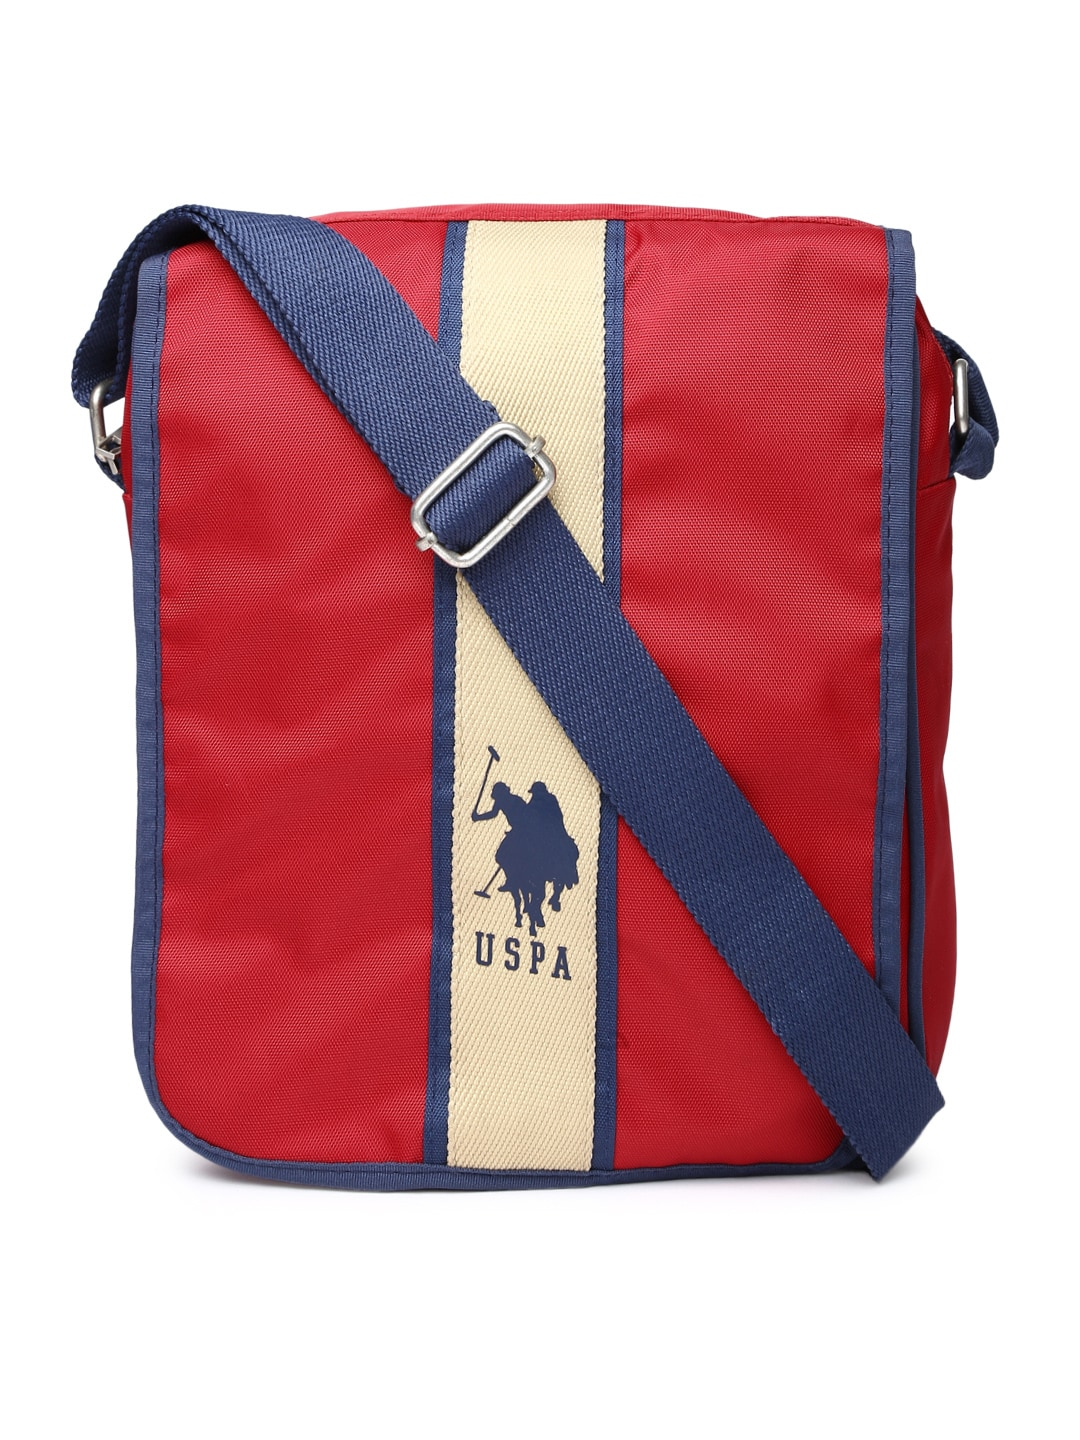 a62862bfc9ba Us polo assn usax0093 Unisex Red Messenger Bag - Best Price in ...